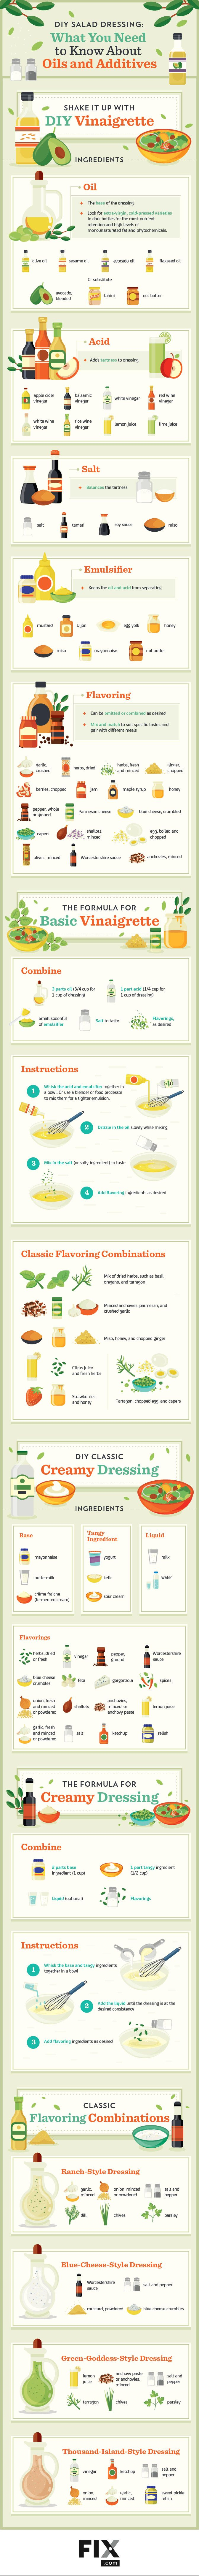 Easy to follow and read, this DIY guide shows you how to create your own salad dressing recipes at home with tips on ingredients and flavor combinations.